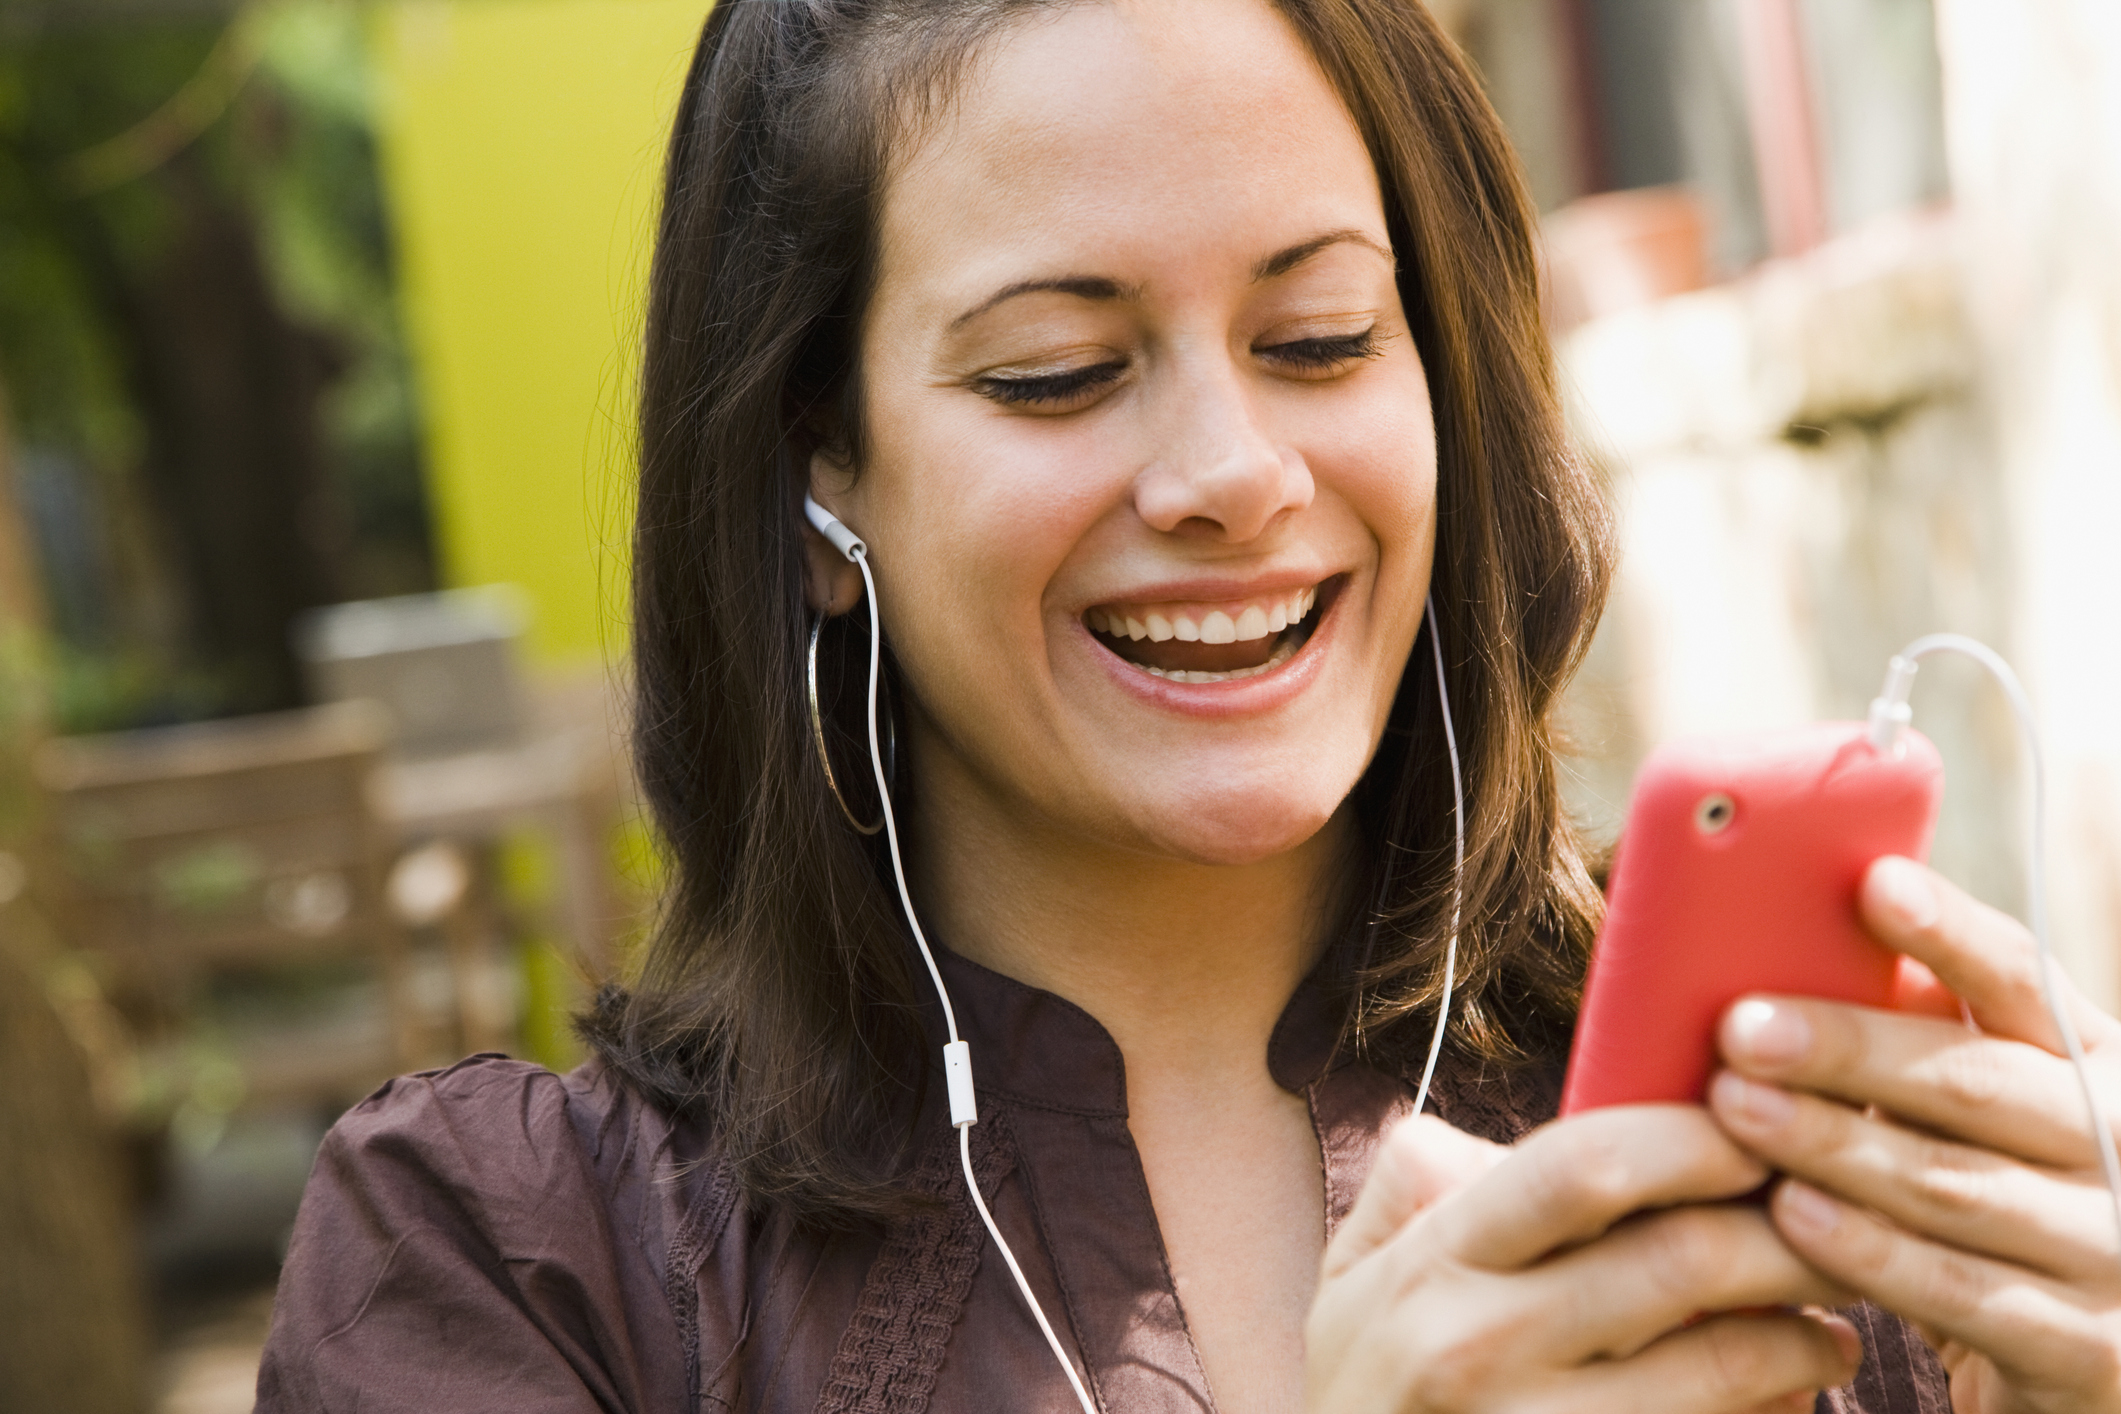 Hearing loss risk increases with earbud usage, listening to loud sounds with earbuds on